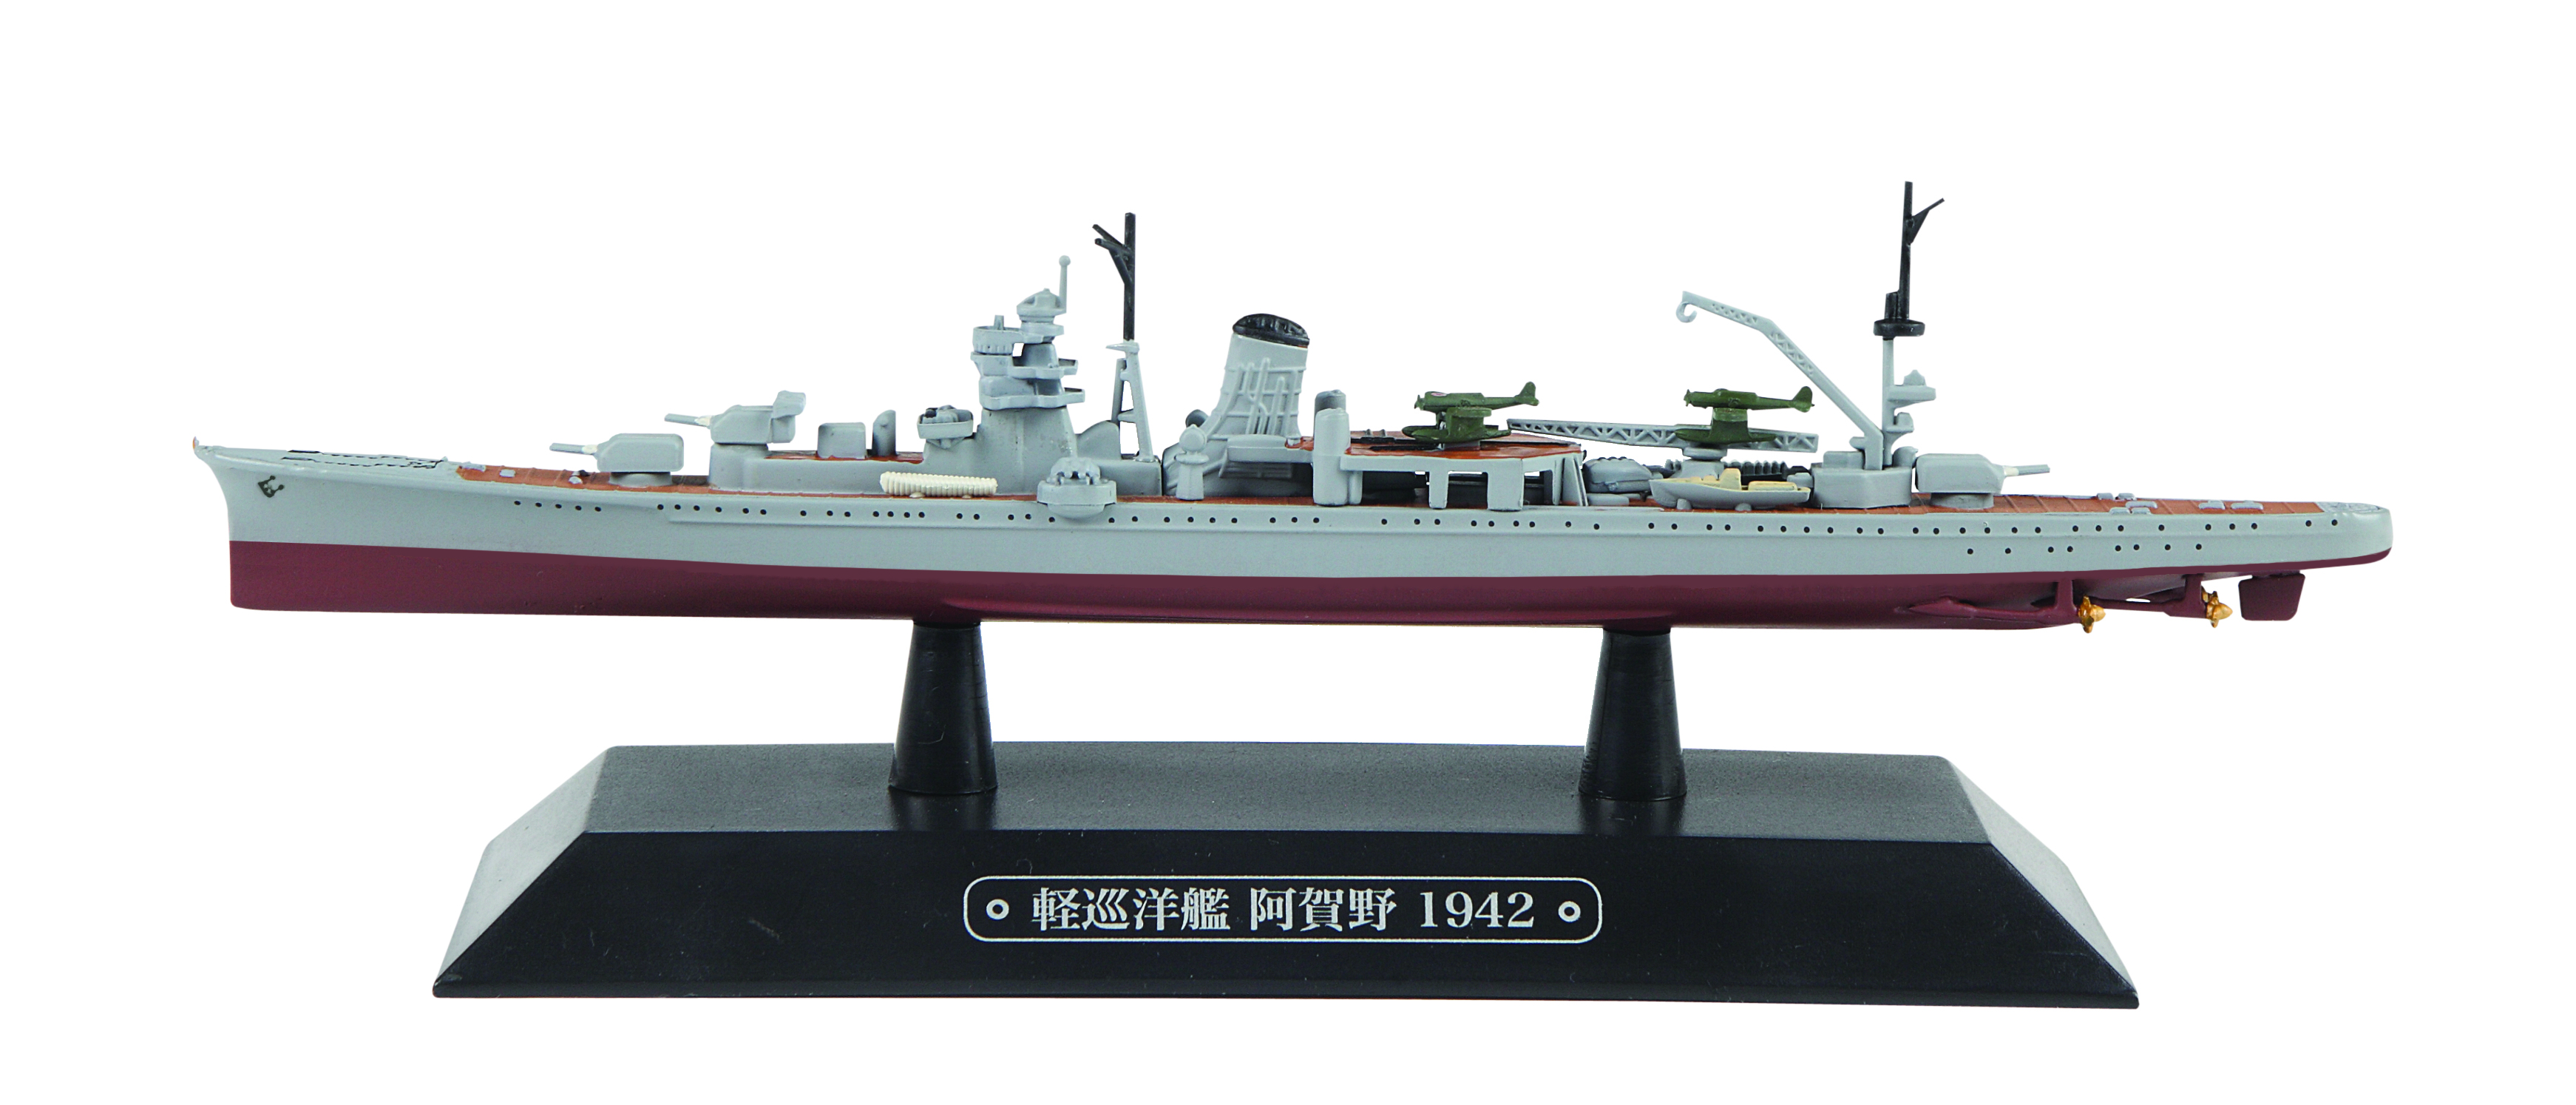 EMGC26 IJN Light Crusier Agano 1942 Scale 1:1100